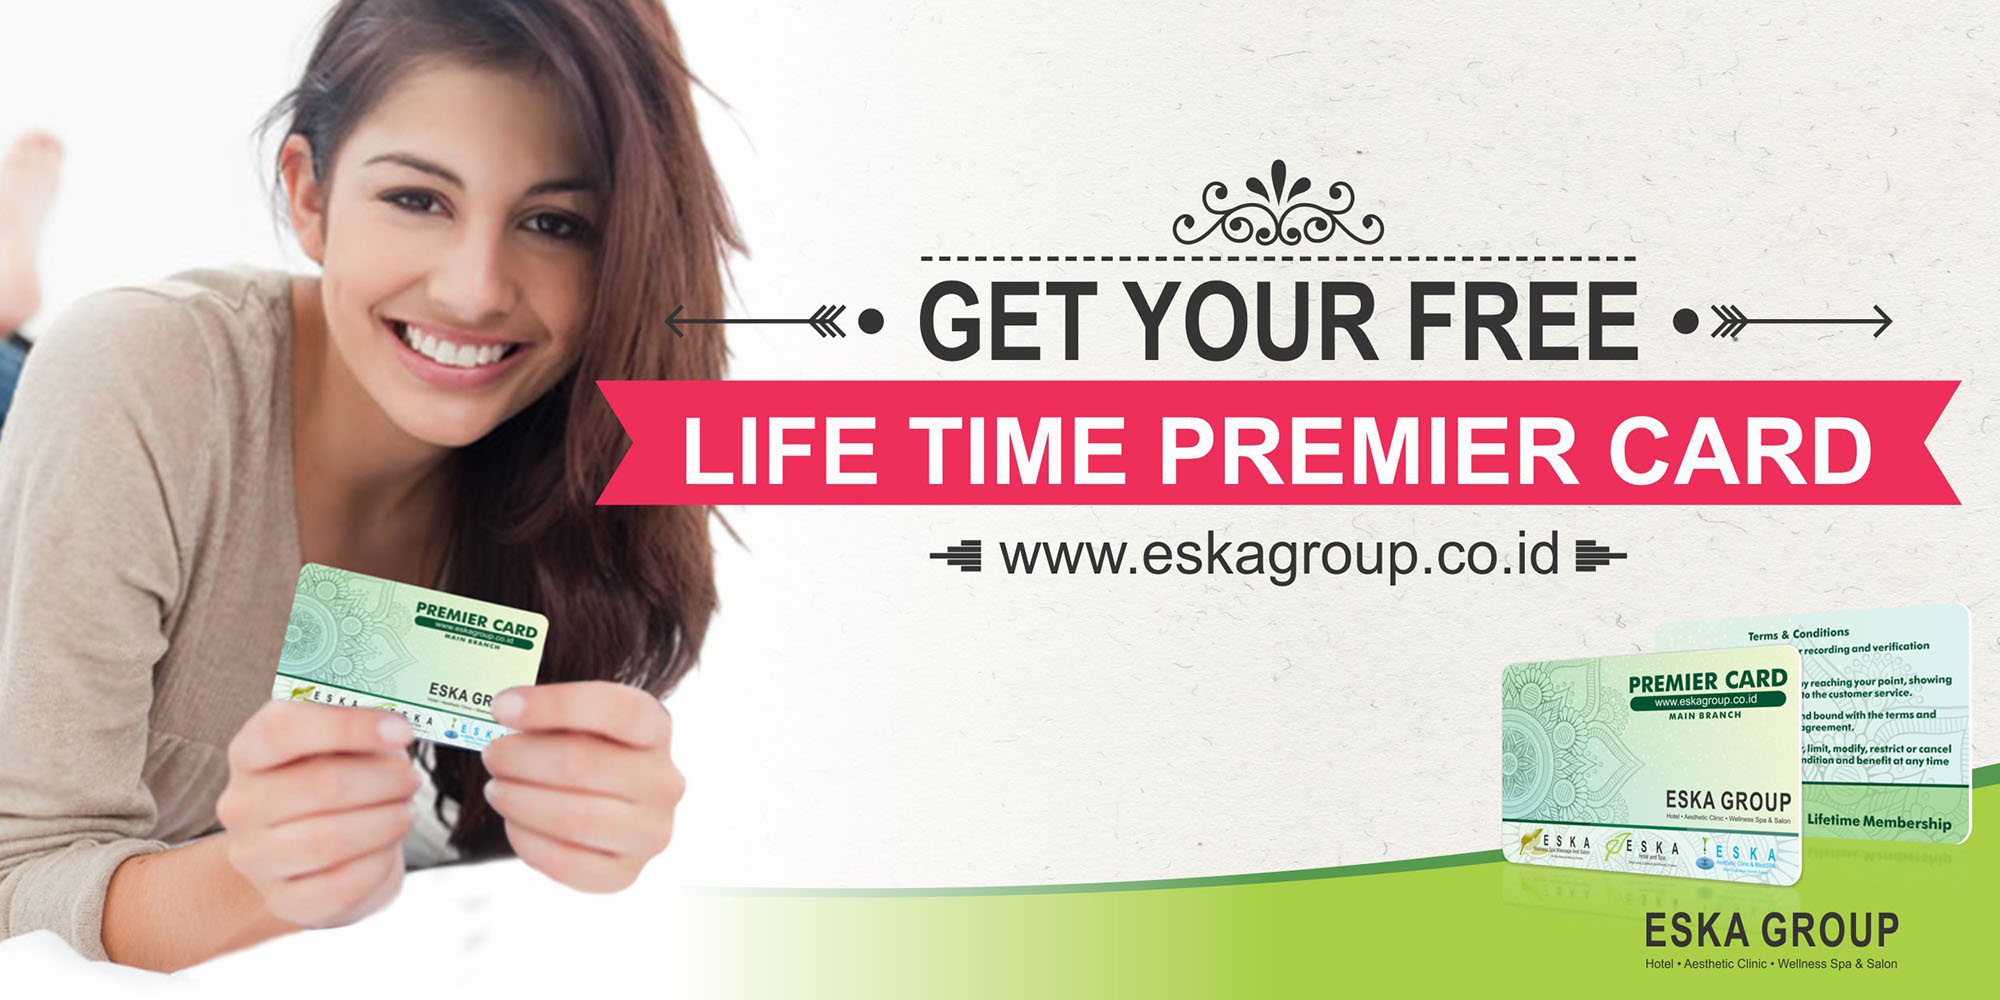 eska group batam 1712-promo-free-lifetime-premier-card-slider